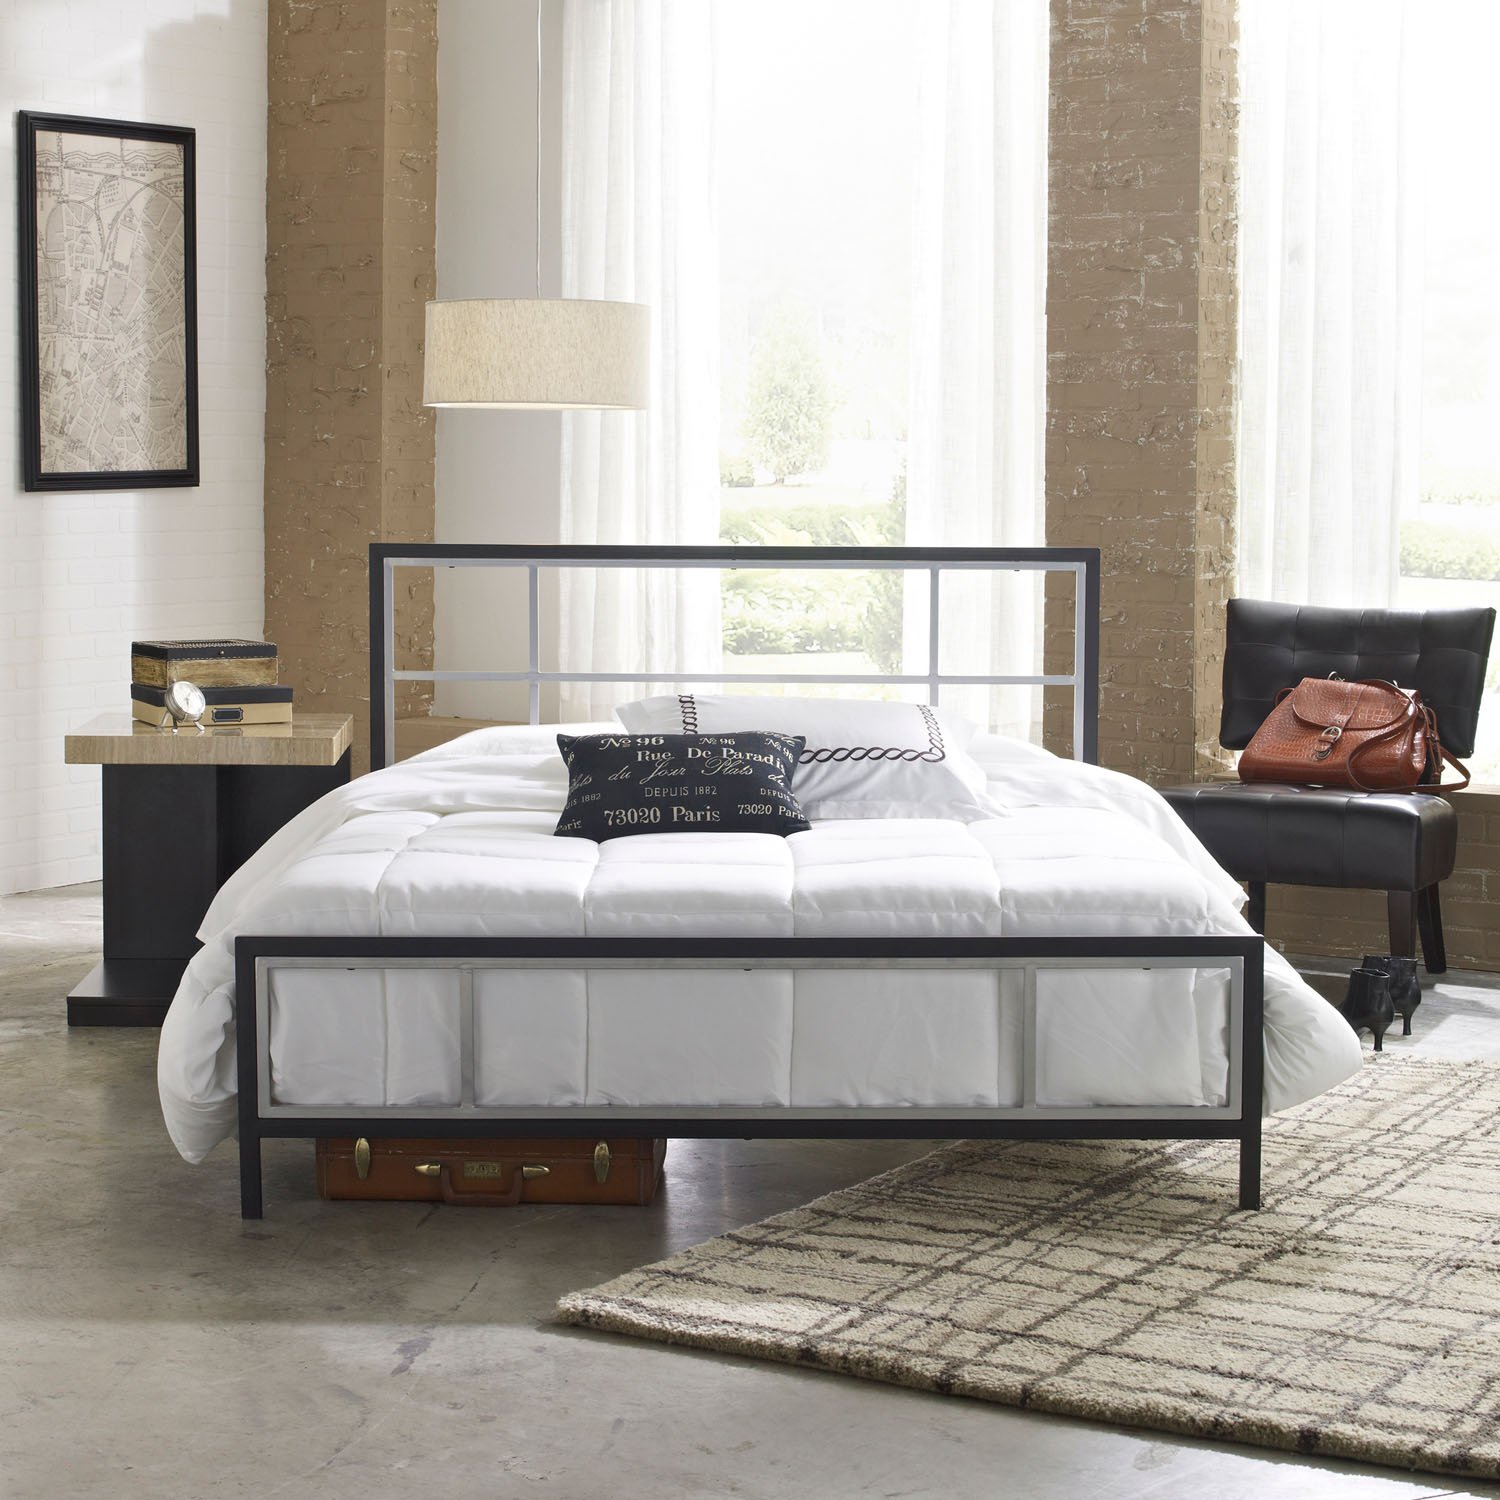 Cute Metal Bed Frame Queen Decoration